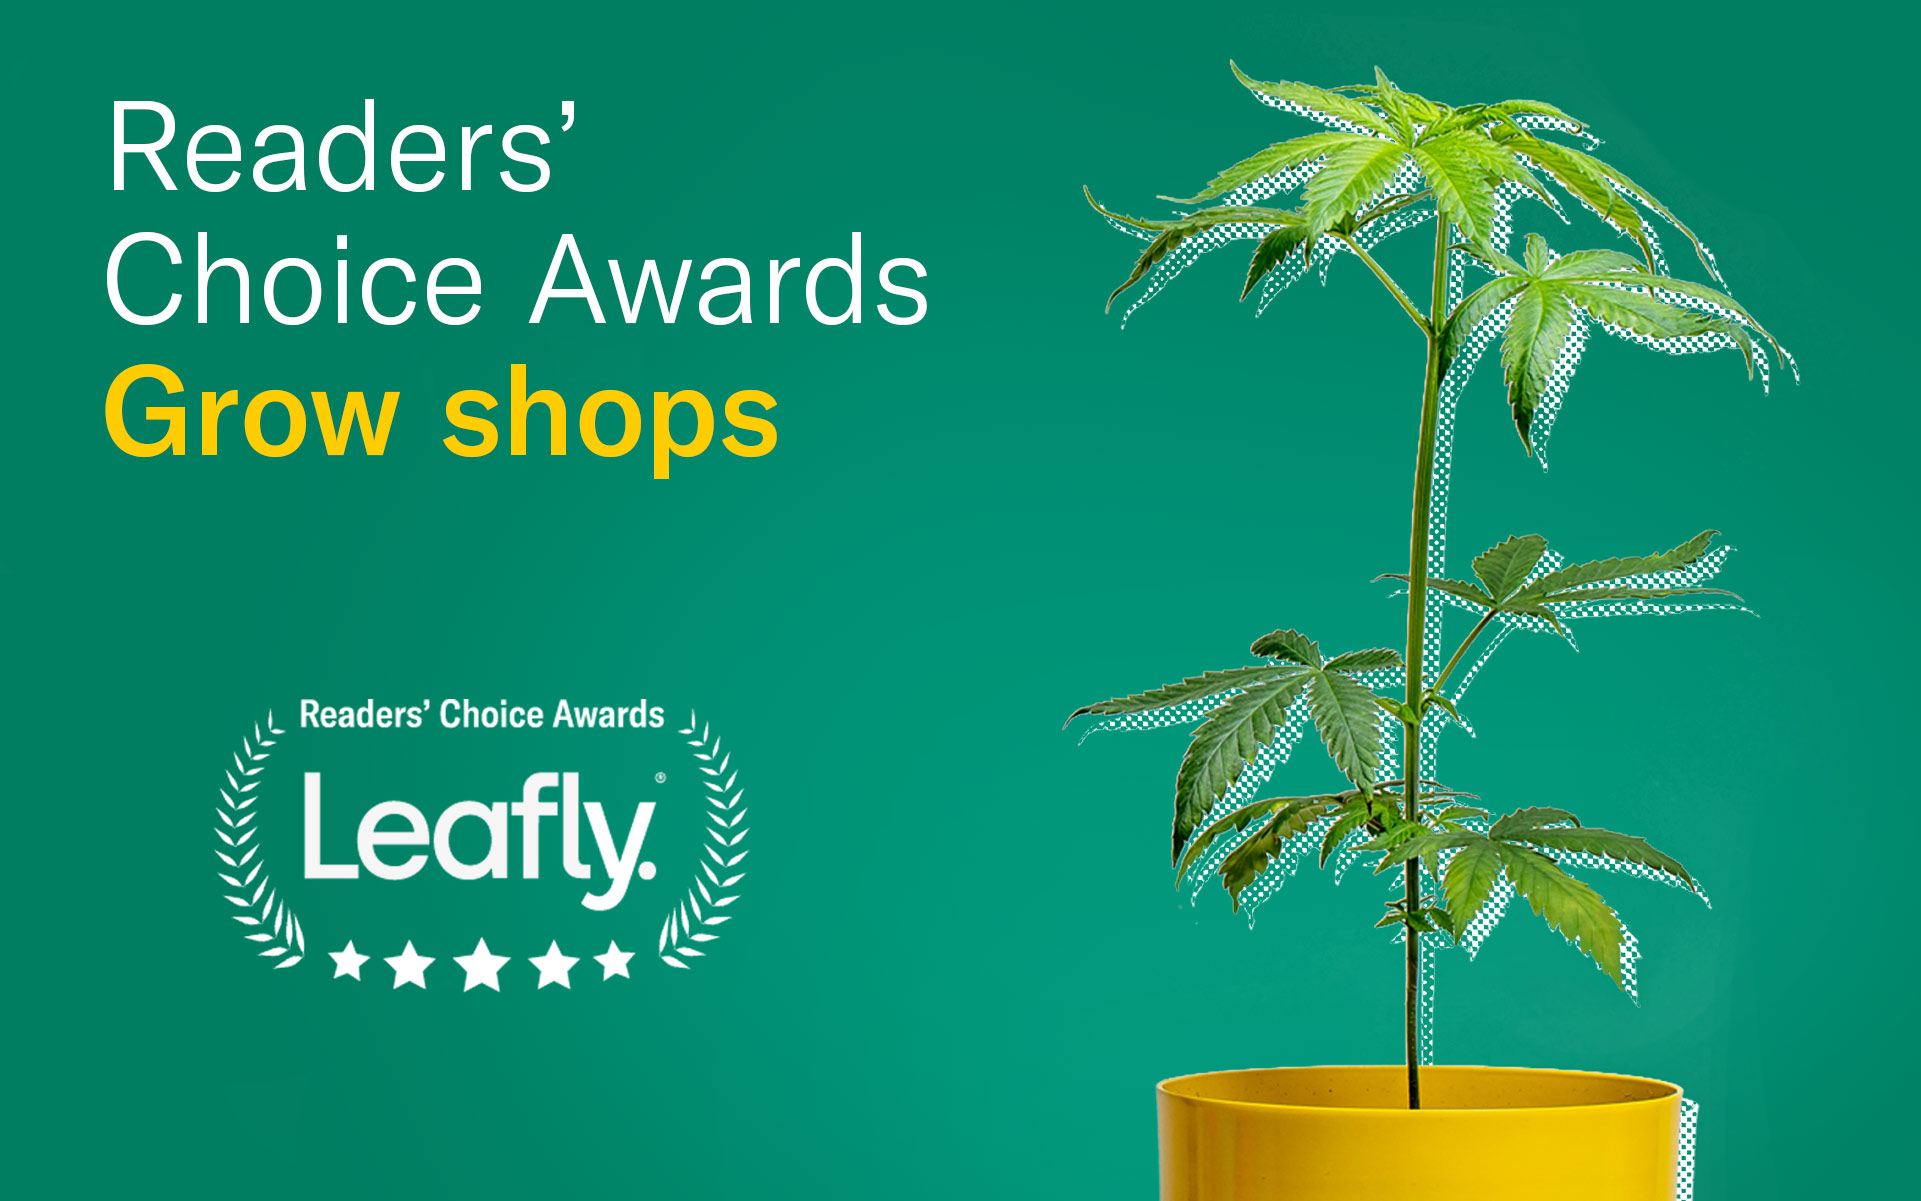 leafly canada readers choice awards favourite grow shop